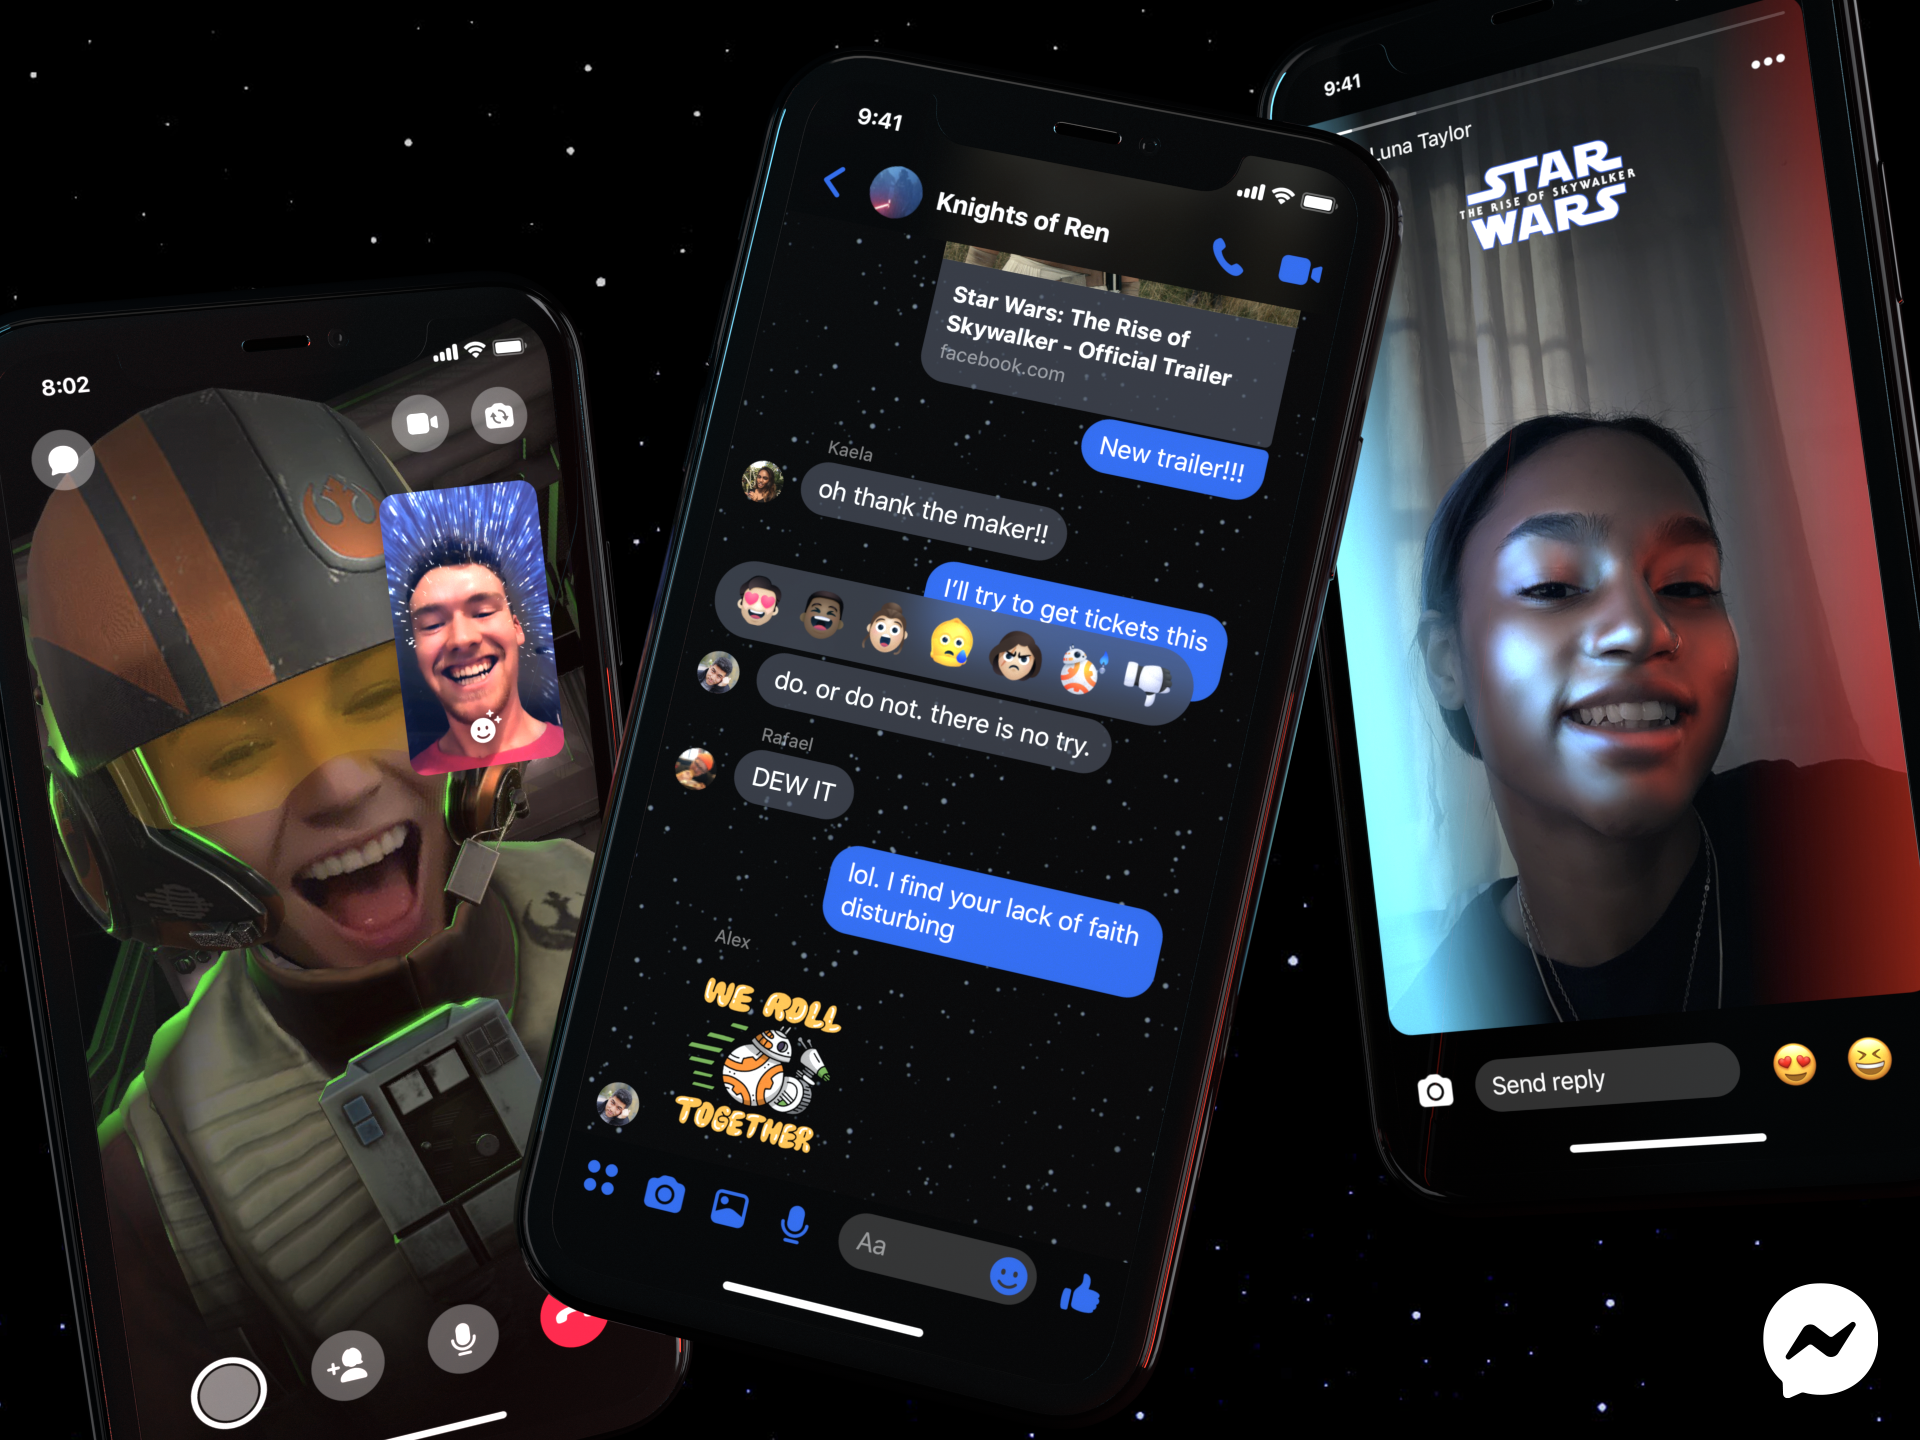 Phone screens showing Star Wars AR effects, chat theme and stickers in Messenger.